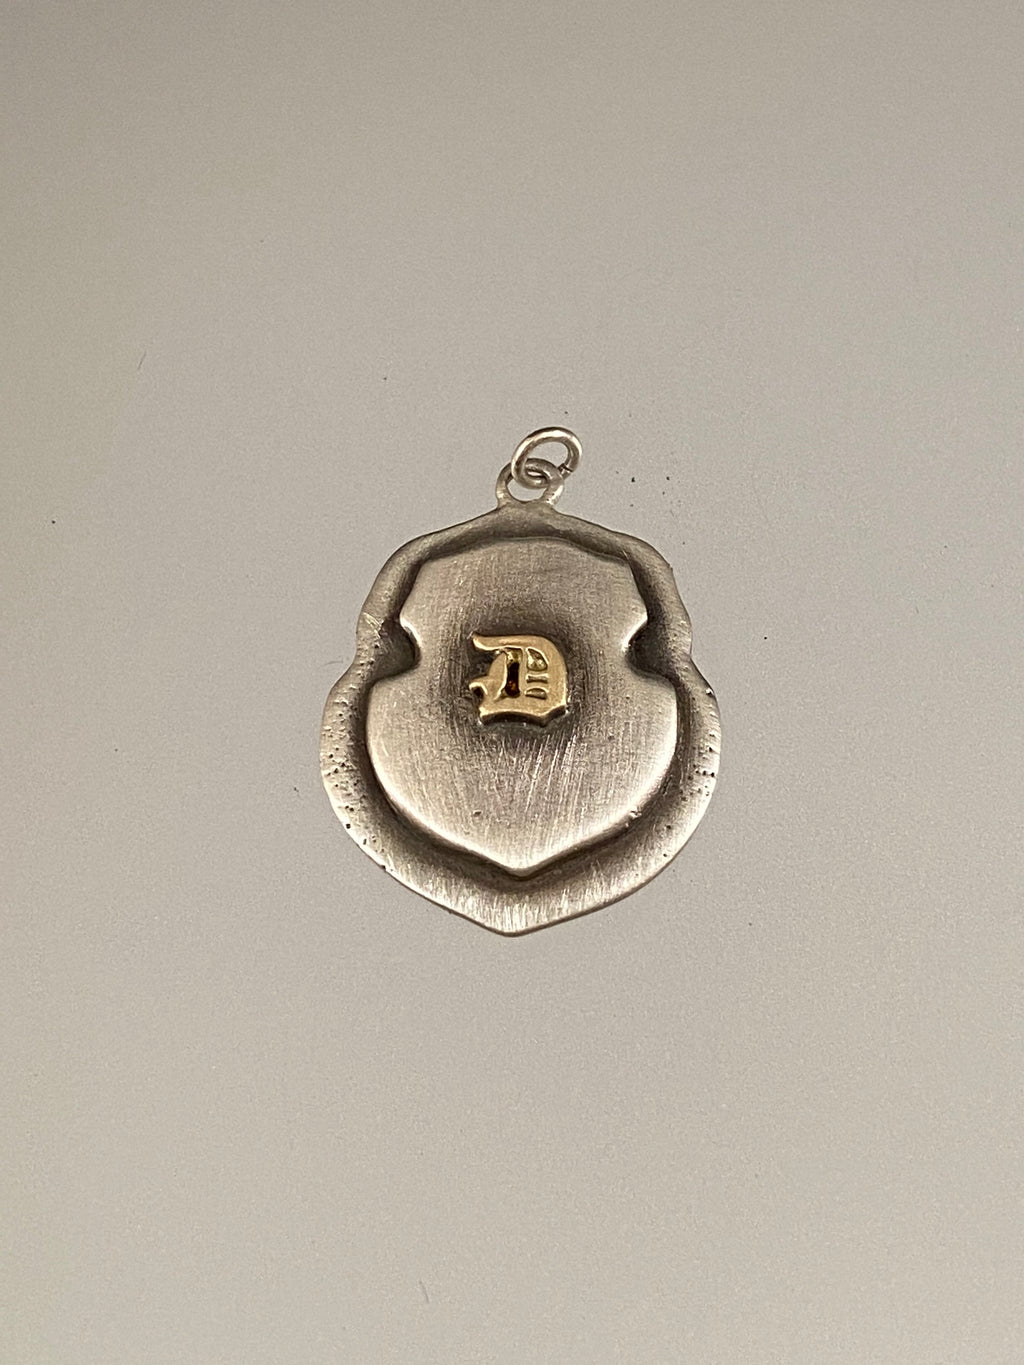 Engraved Large Saddle Shield 14K 'D' Initial